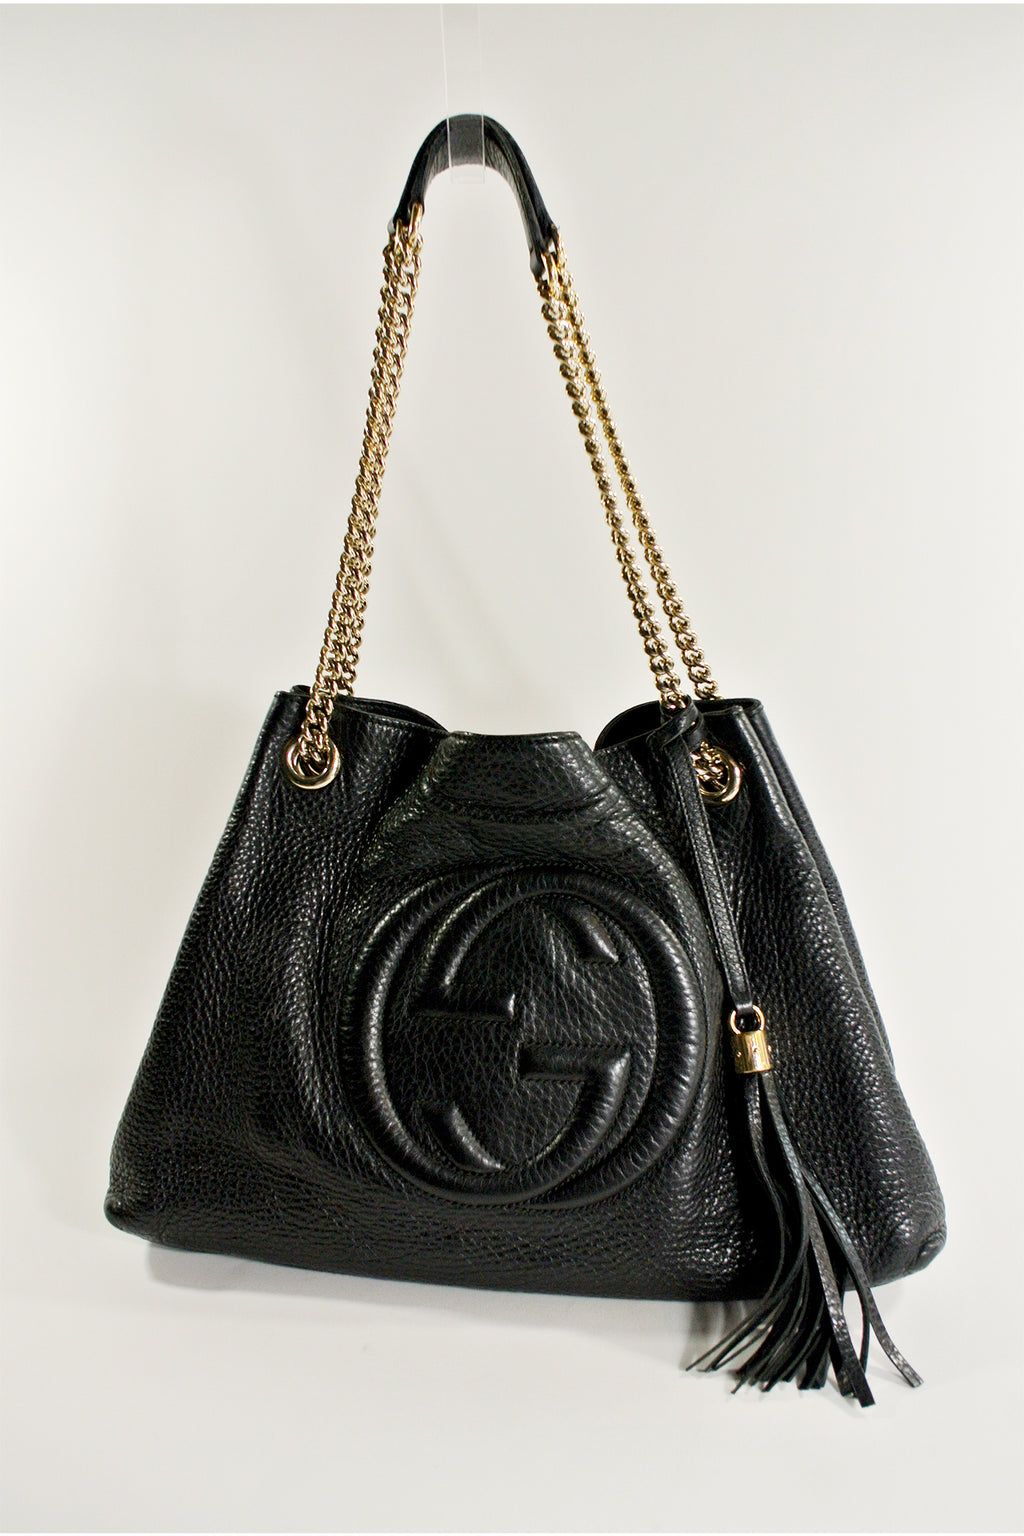 Gucci Black Soho Chain Shoulder Bag